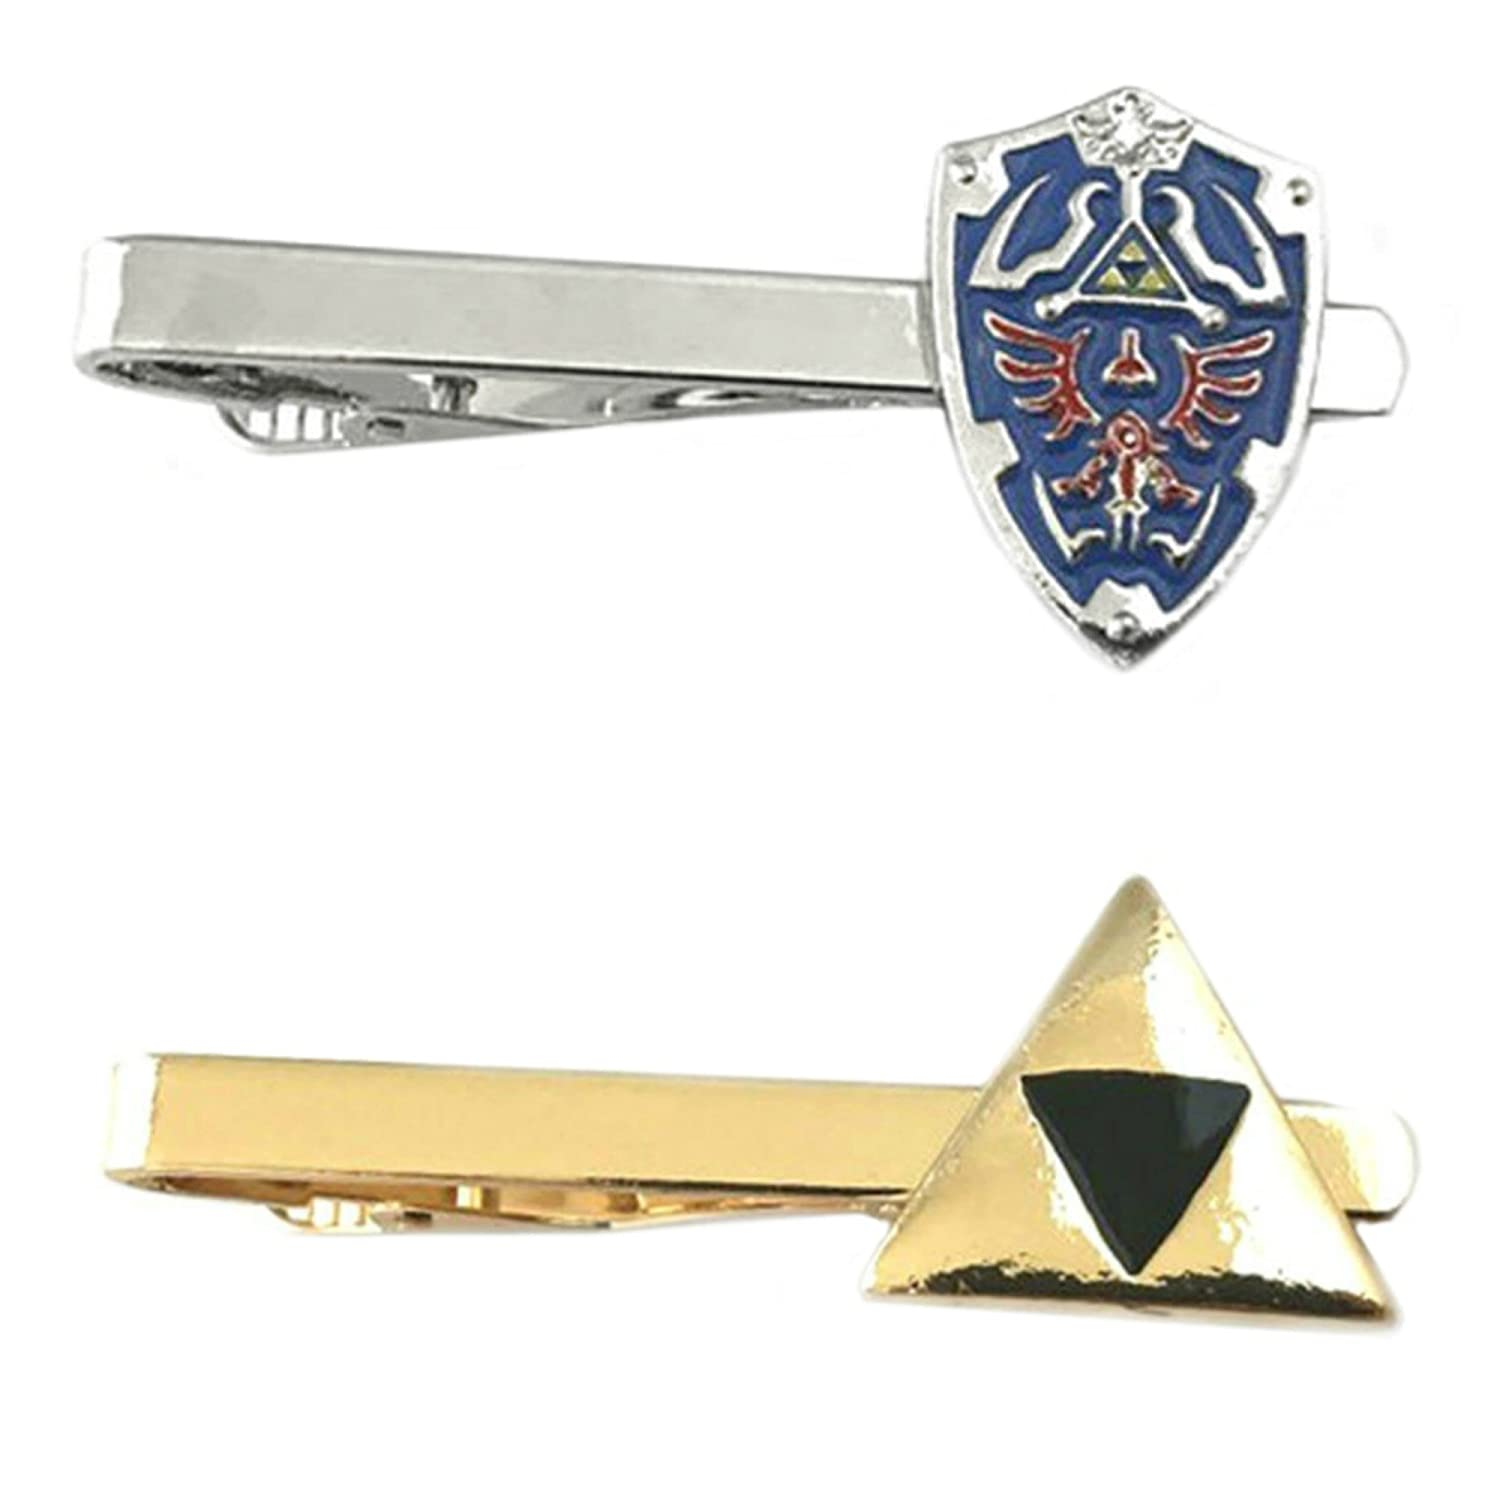 Outlander Video Games - Legend of Zelda Shield & Legend of Zelda Triforce - Tiebar Tie Clasp Set of 2 Wedding Superhero Logo w/Gift Box Outlander Brand